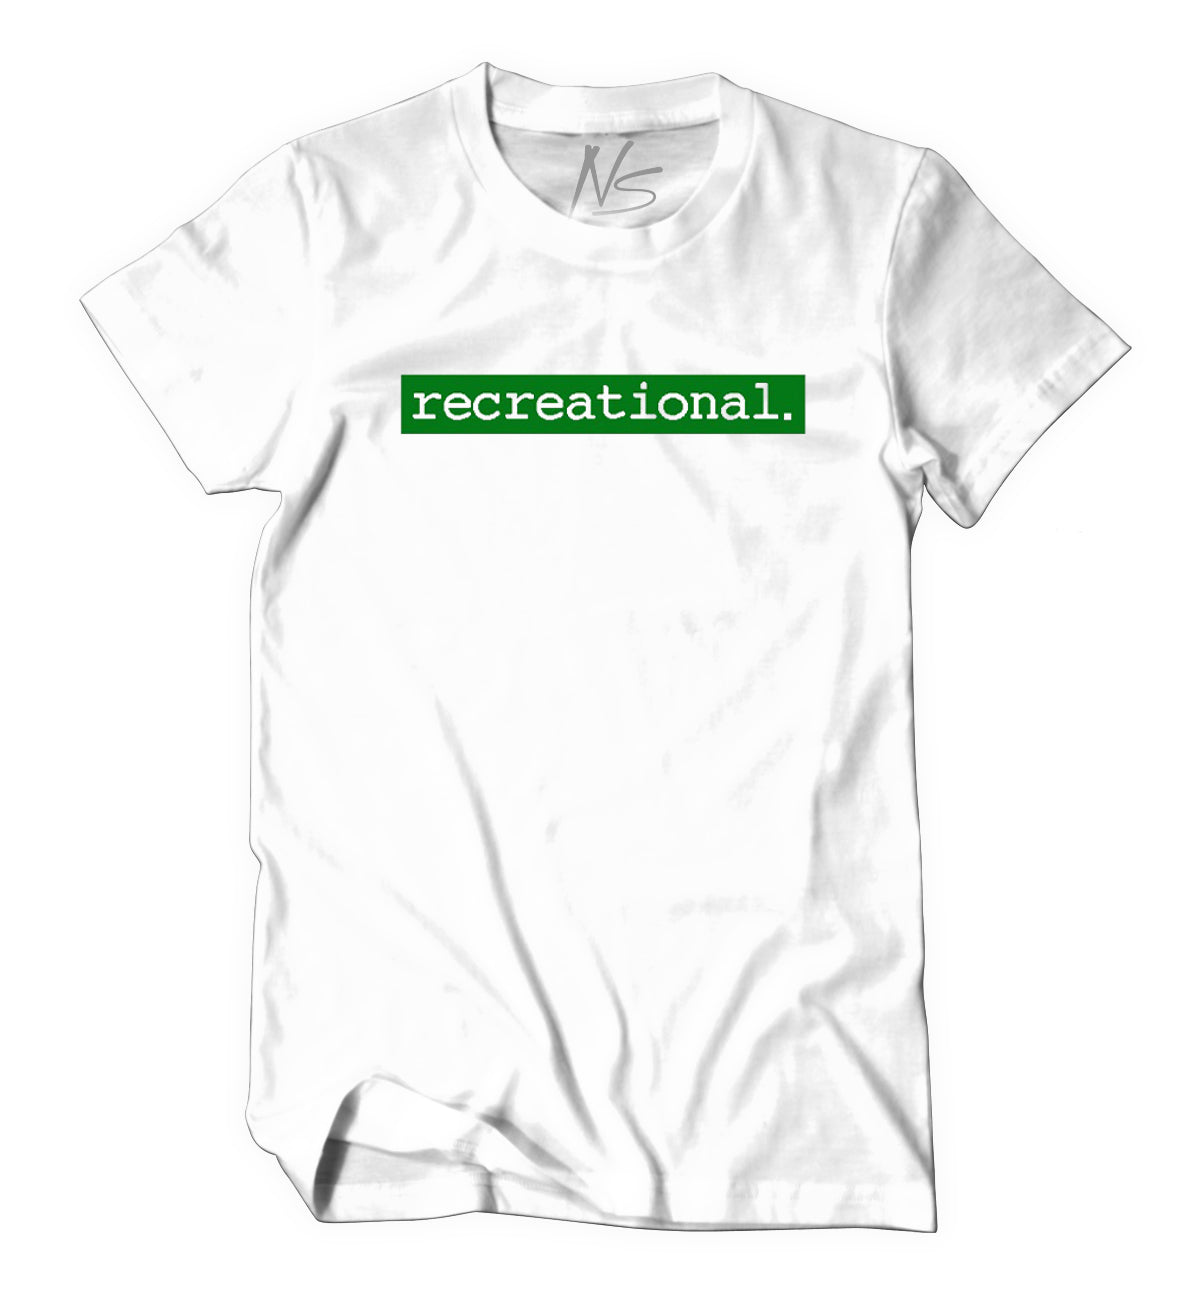 Recreational Tee